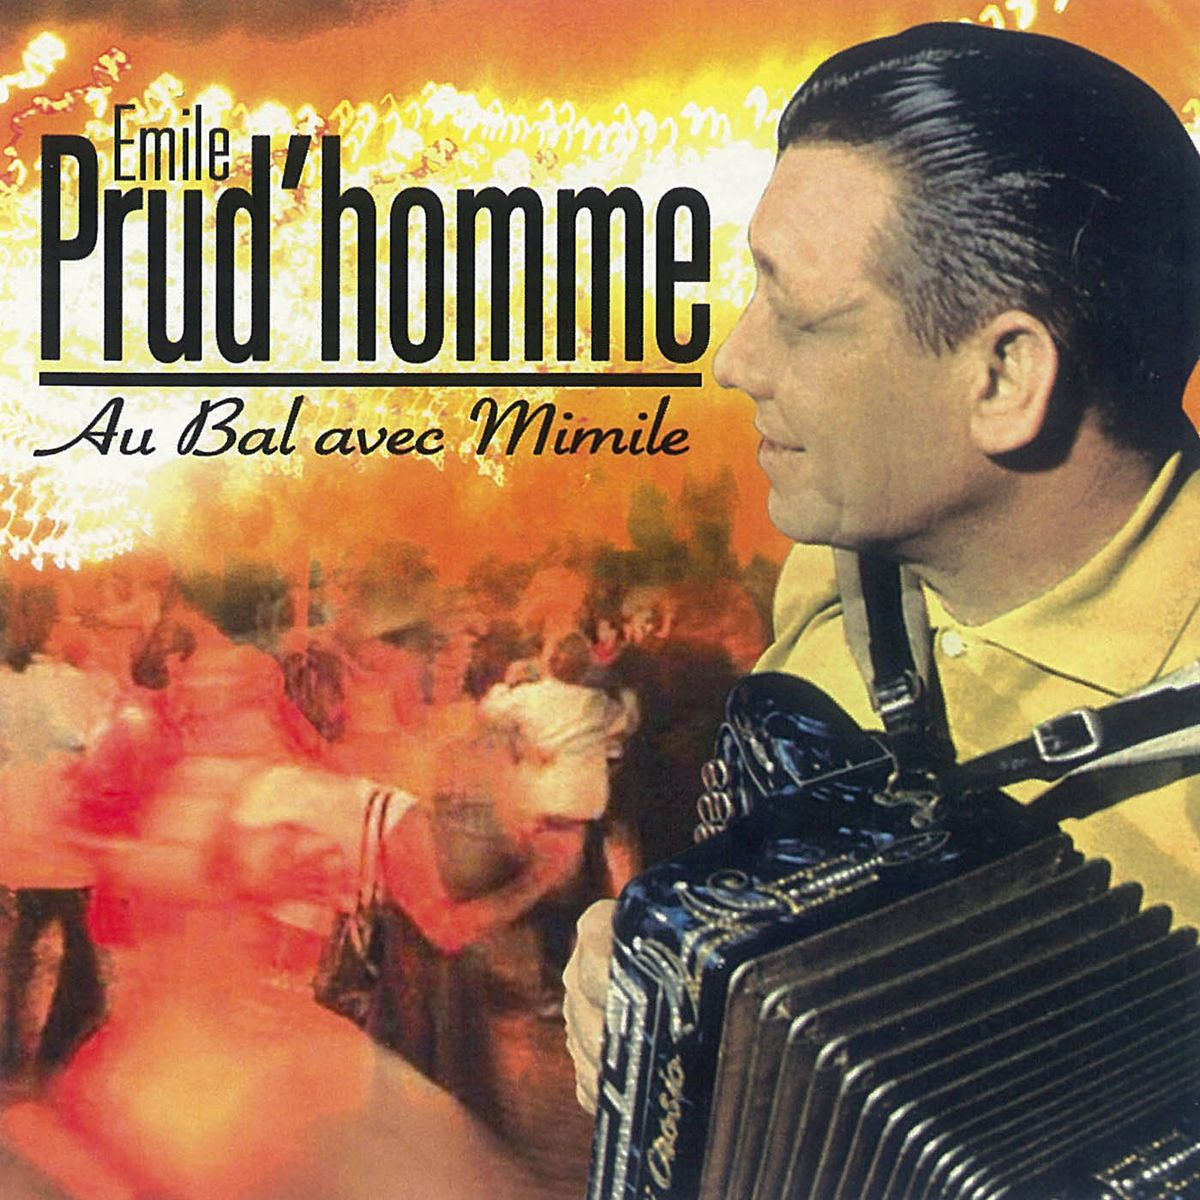 Эмиль Прадхомм Emile Prud'homme. Au bal avec Mimile эмиль хейни emile haynie we fall by emile haynie